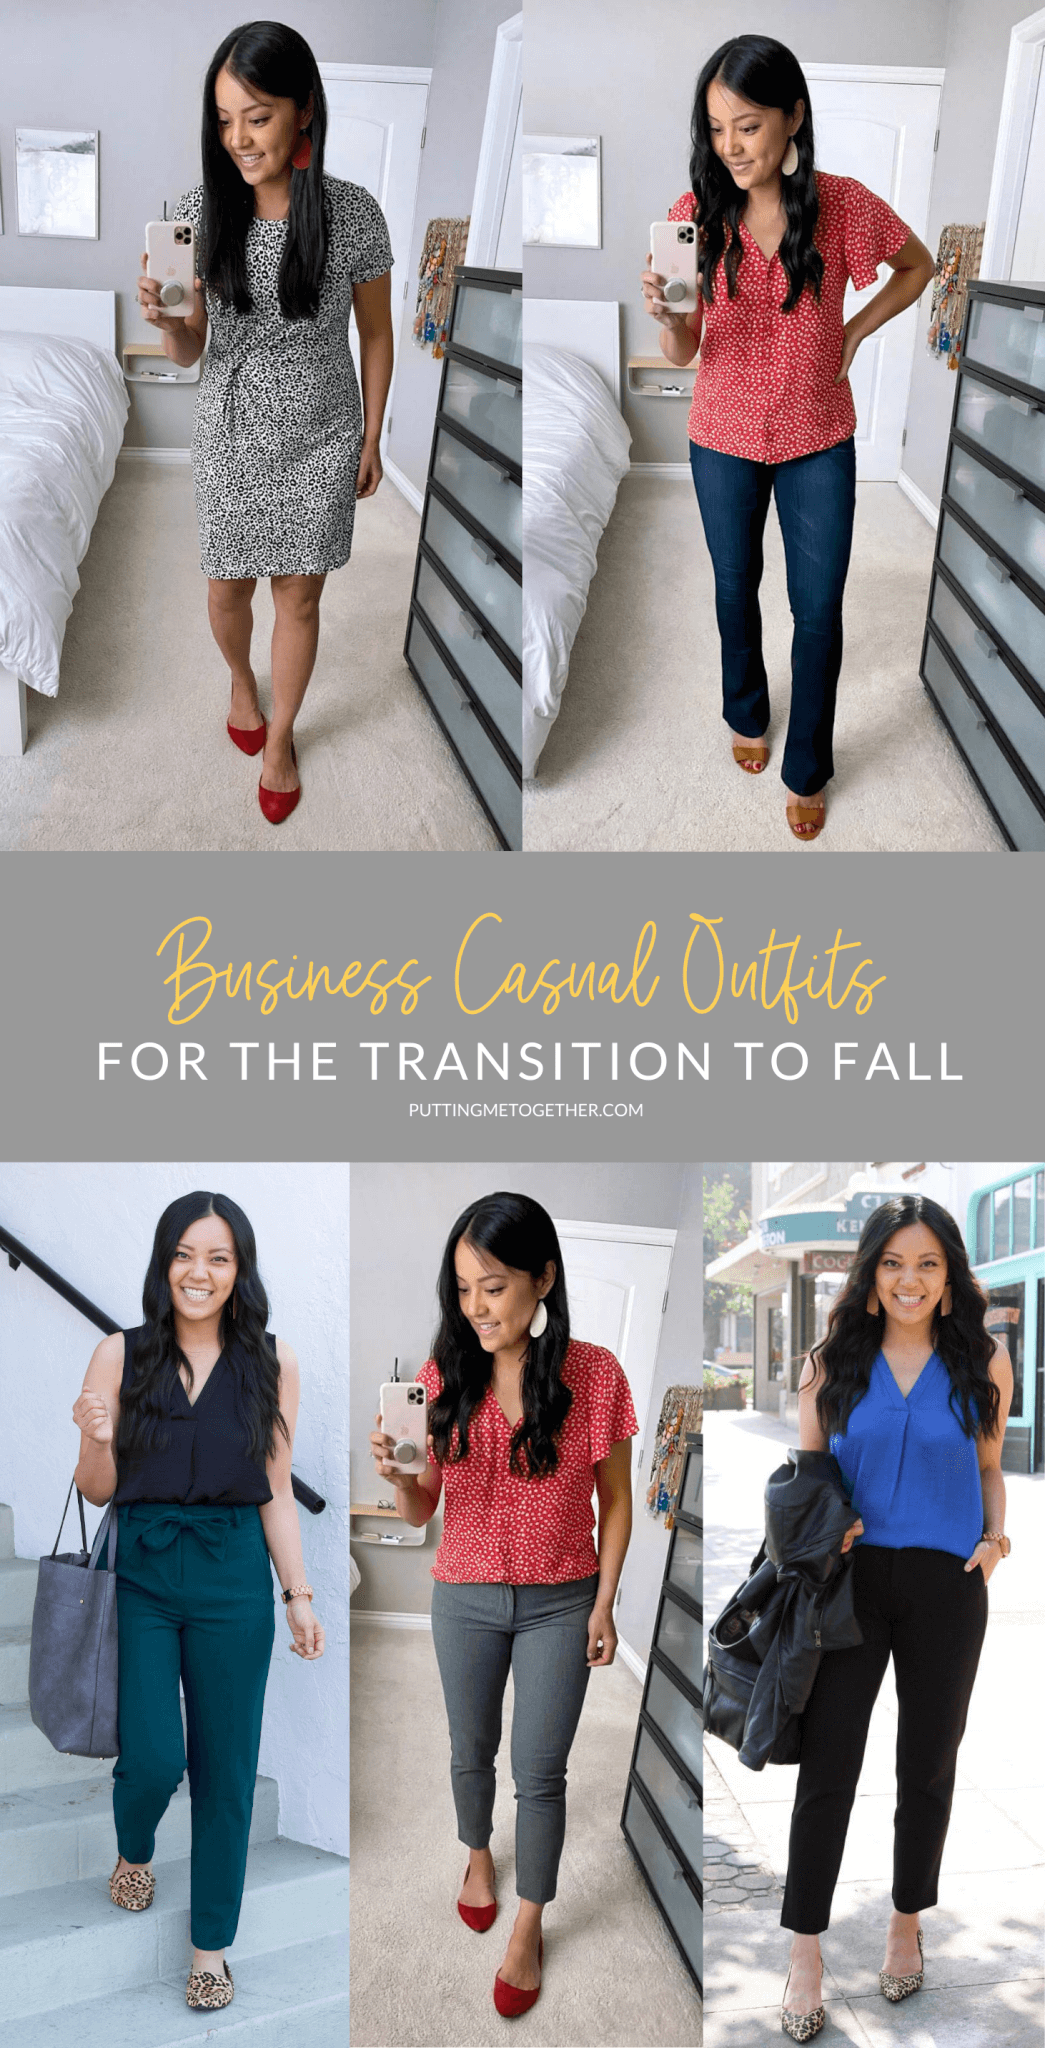 5 Fall Business Casual Outfits For The Transition To Fall